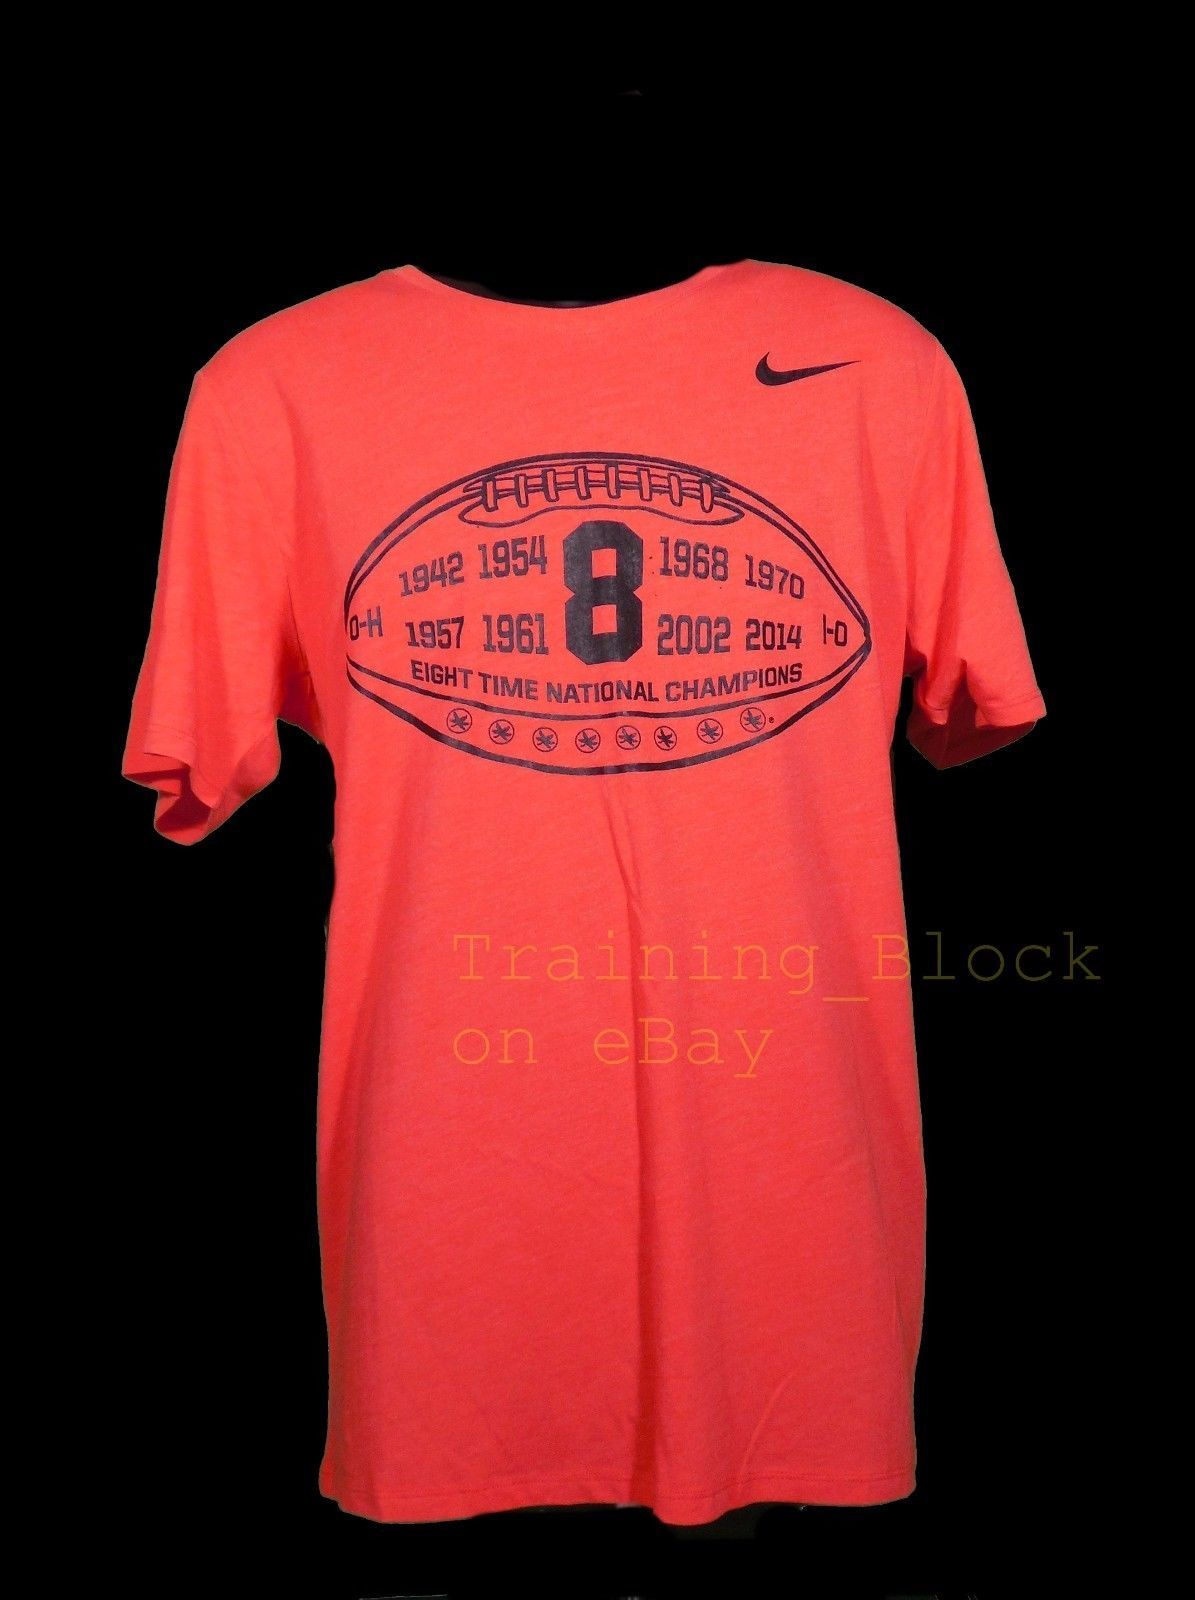 Nike Ohio State Buckeyes 8 Time National and 50 similar items e22a15666